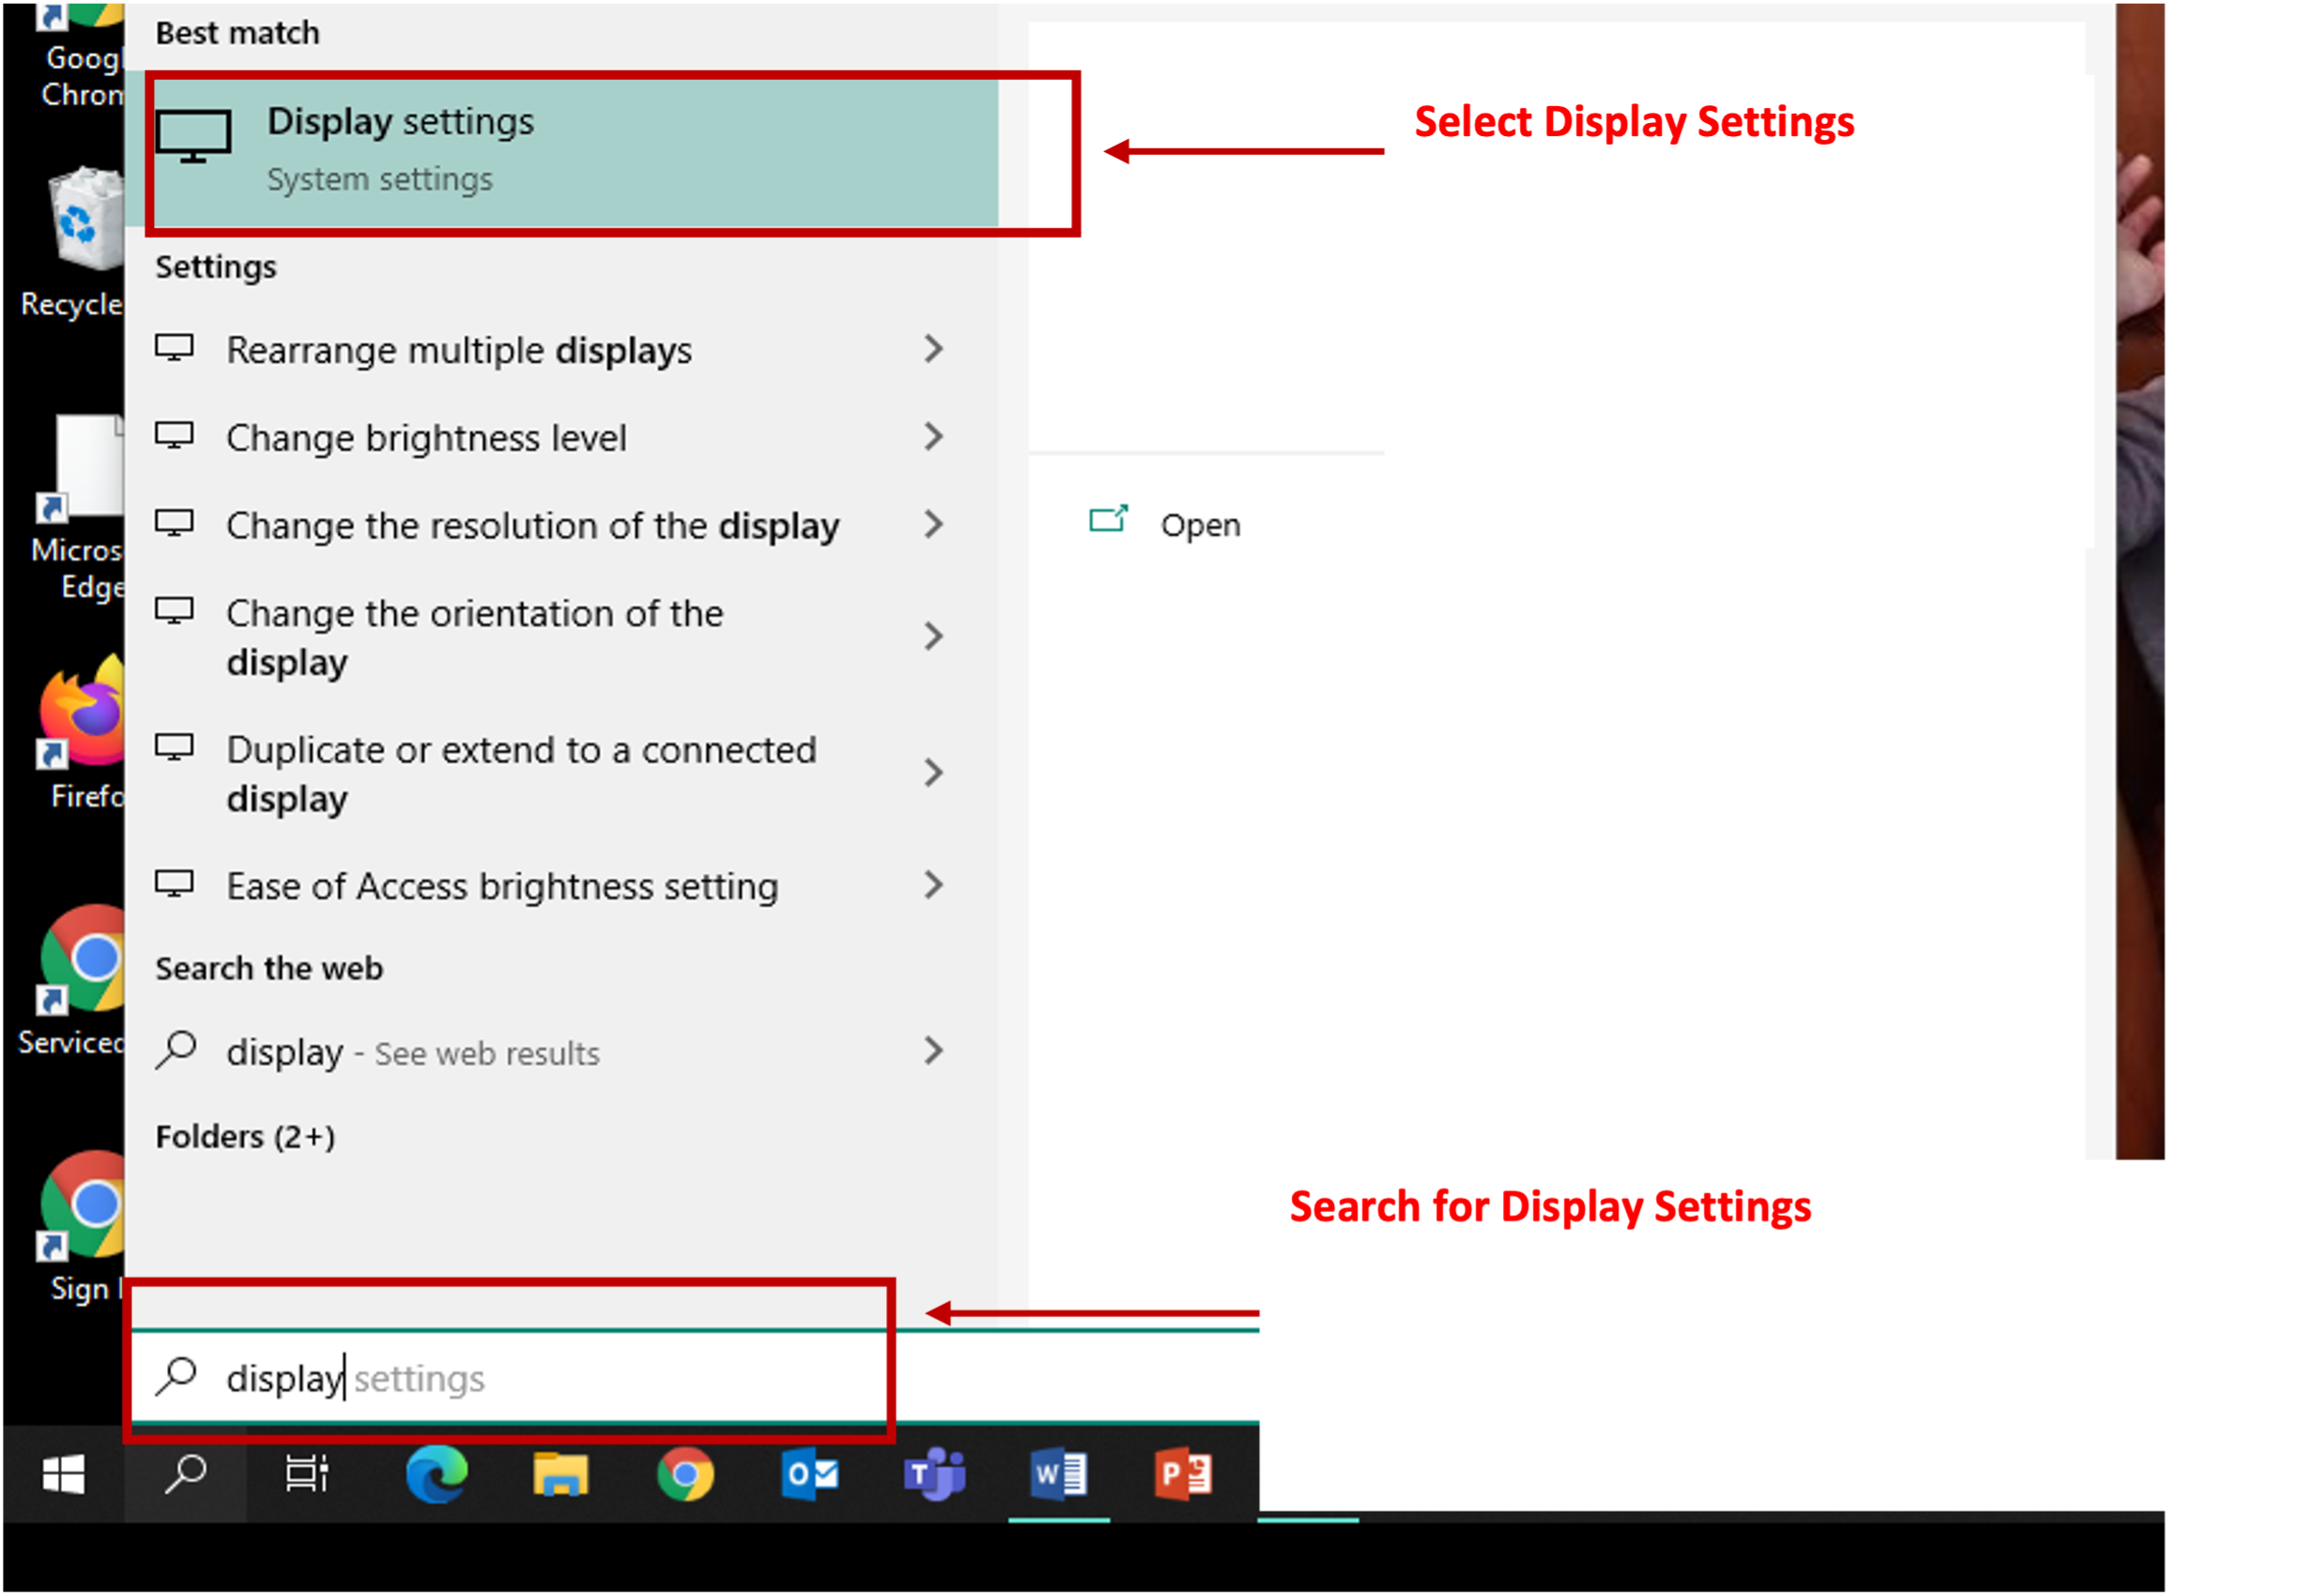 Search and Select Display Settings